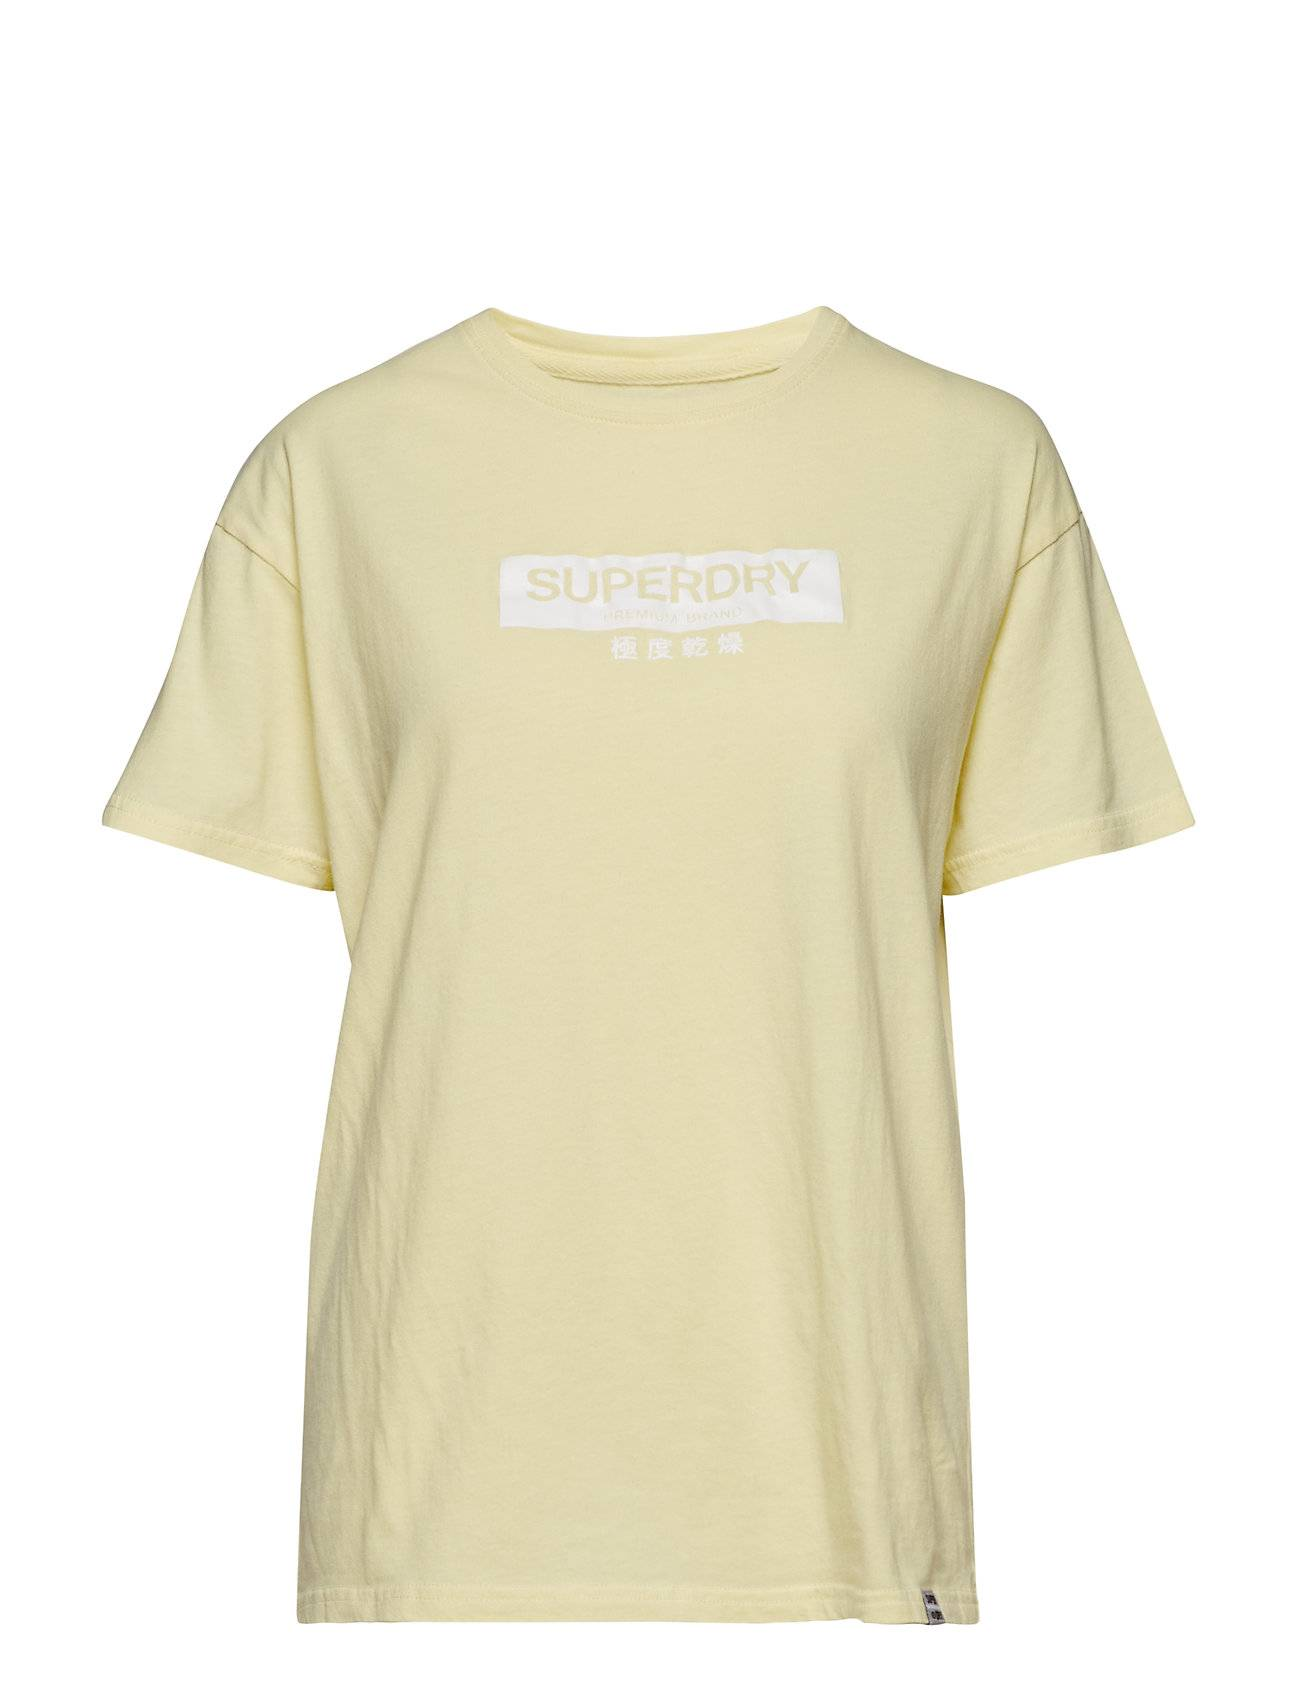 Superdry Premium Brand Classic Portland Tee T-shirts & Tops Short-sleeved Keltainen Superdry